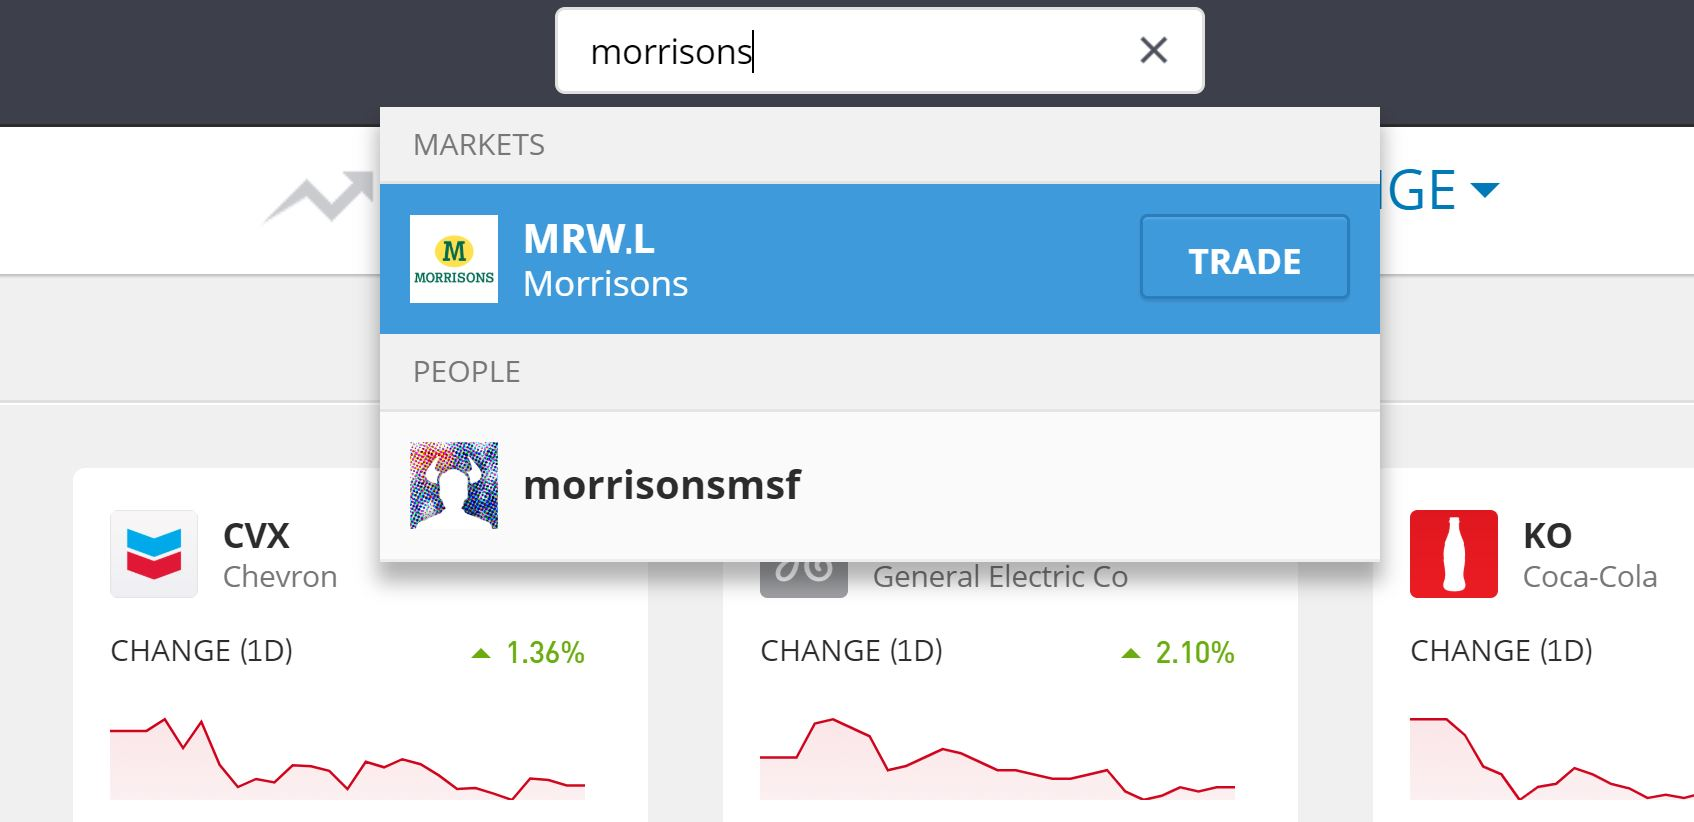 Search for Morrisons shares on eToro